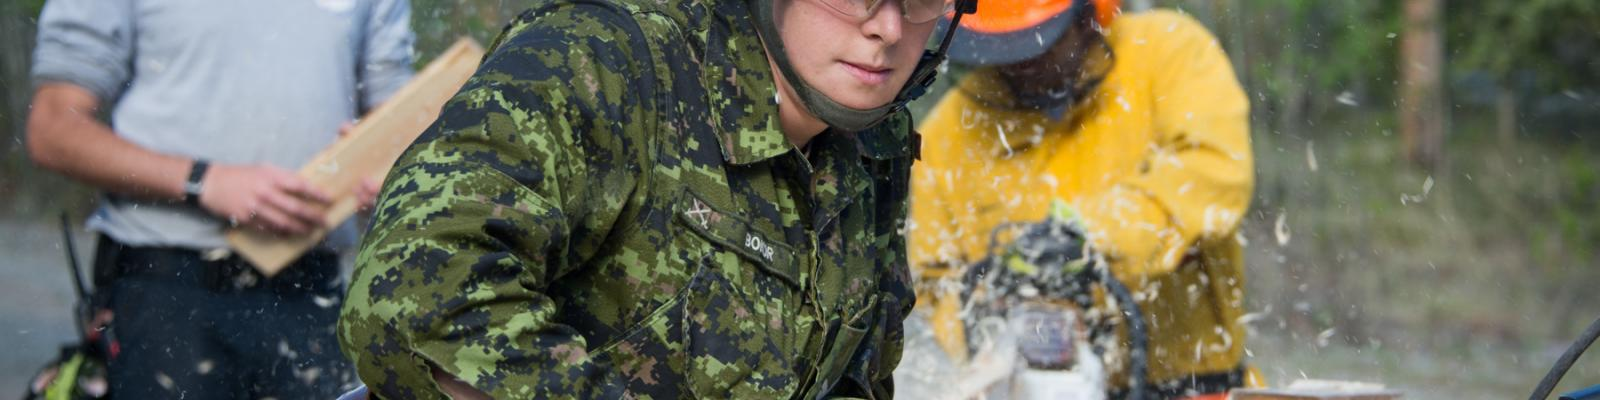 Corporal Laura Bokor steadies a board while participating in structural field training during Operation NANOOK-TATIGIIT 19 in Whitehorse, Yukon, May 28, 2019.